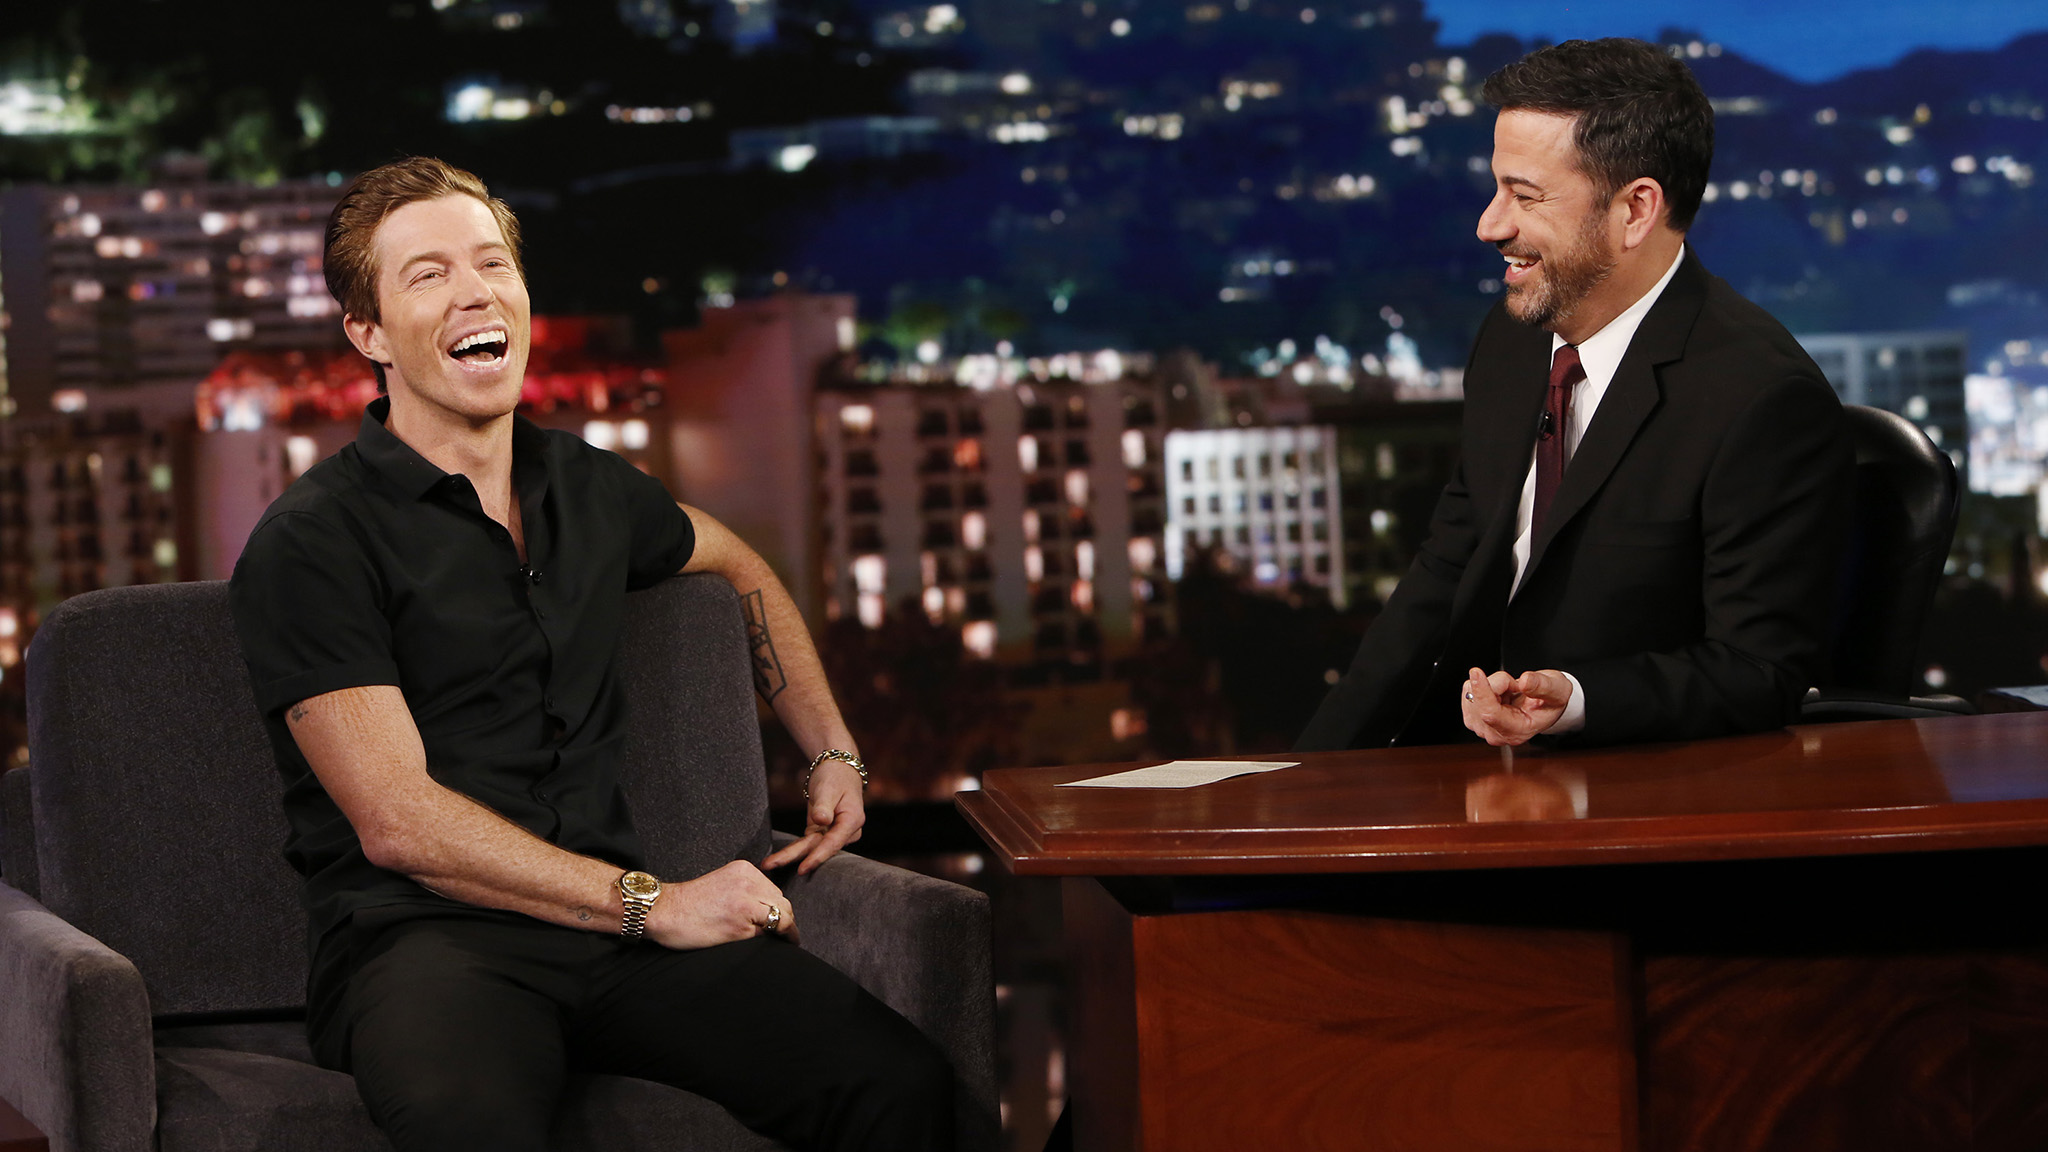 My parents explained to me what happened, but they didn't hover over me to be cautious, explains Shaun White to Jimmy Kimmel.